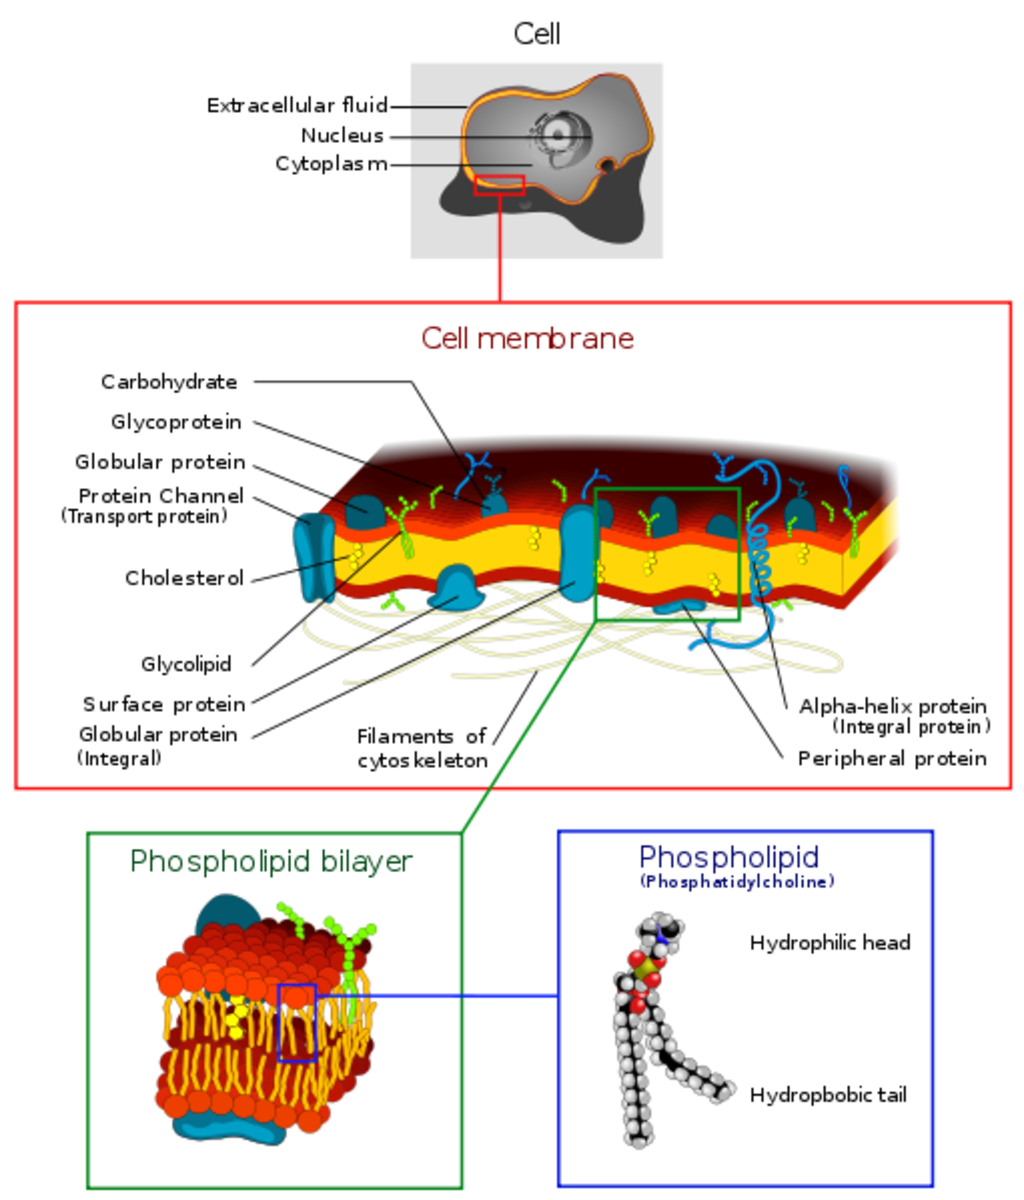 The cell membrane is a semipermeable lipid bilayer common to all living cells. It contains primarily proteins and lipids, which are involved in cellular processes.